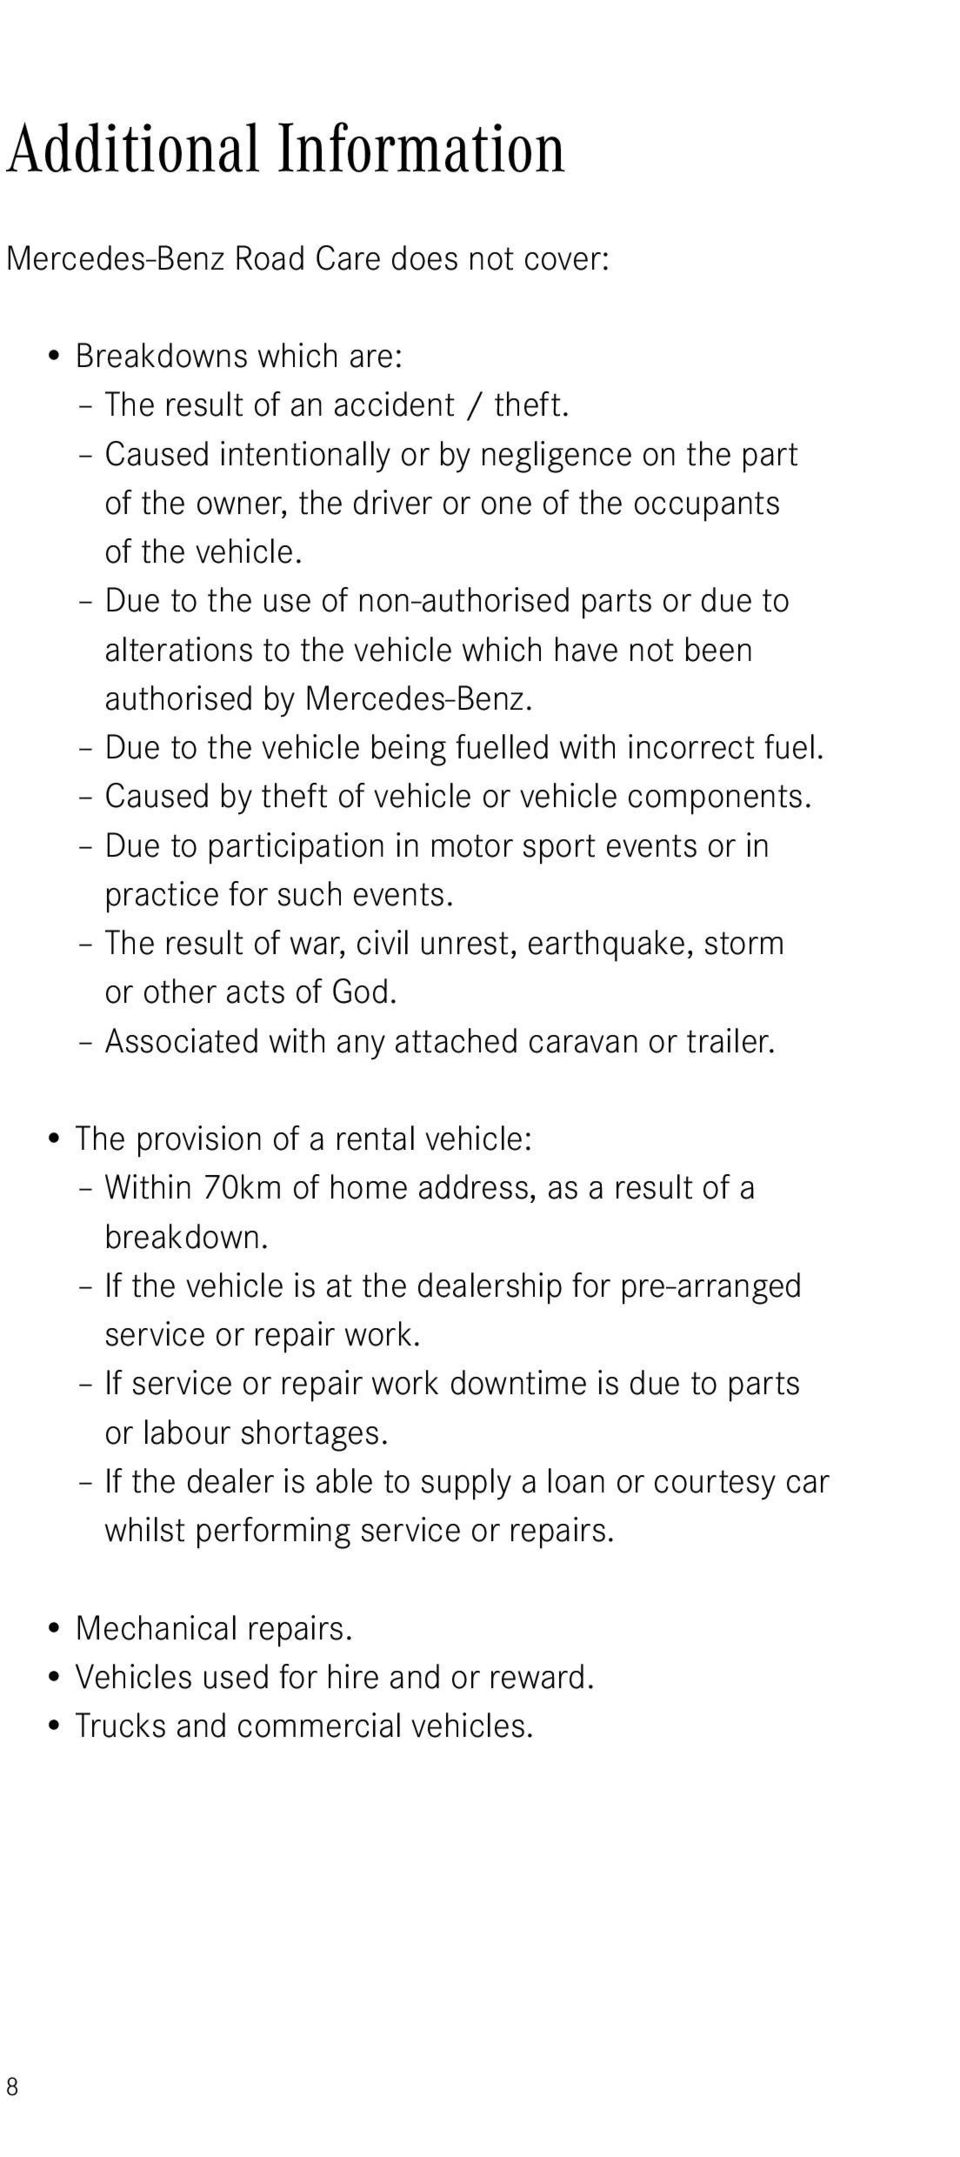 Due to the use of non-authorised parts or due to alterations to the vehicle which have not been authorised by Mercedes-Benz. Due to the vehicle being fuelled with incorrect fuel.